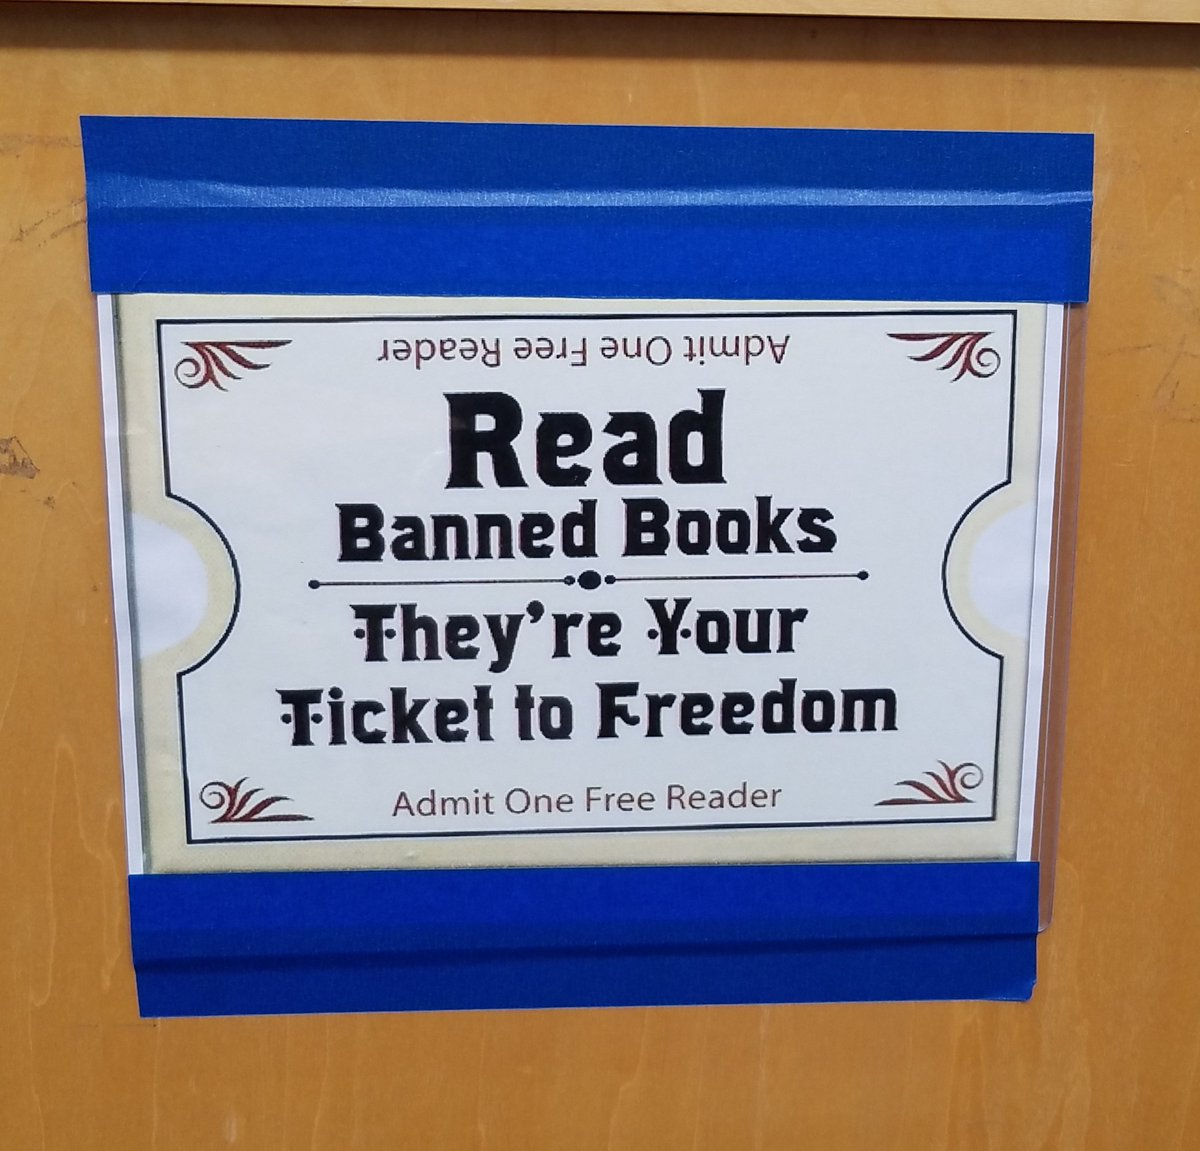 Banned Book Week! Stop by the media center & pick up a banned book to read! #BannedBooksWeek #SLM18